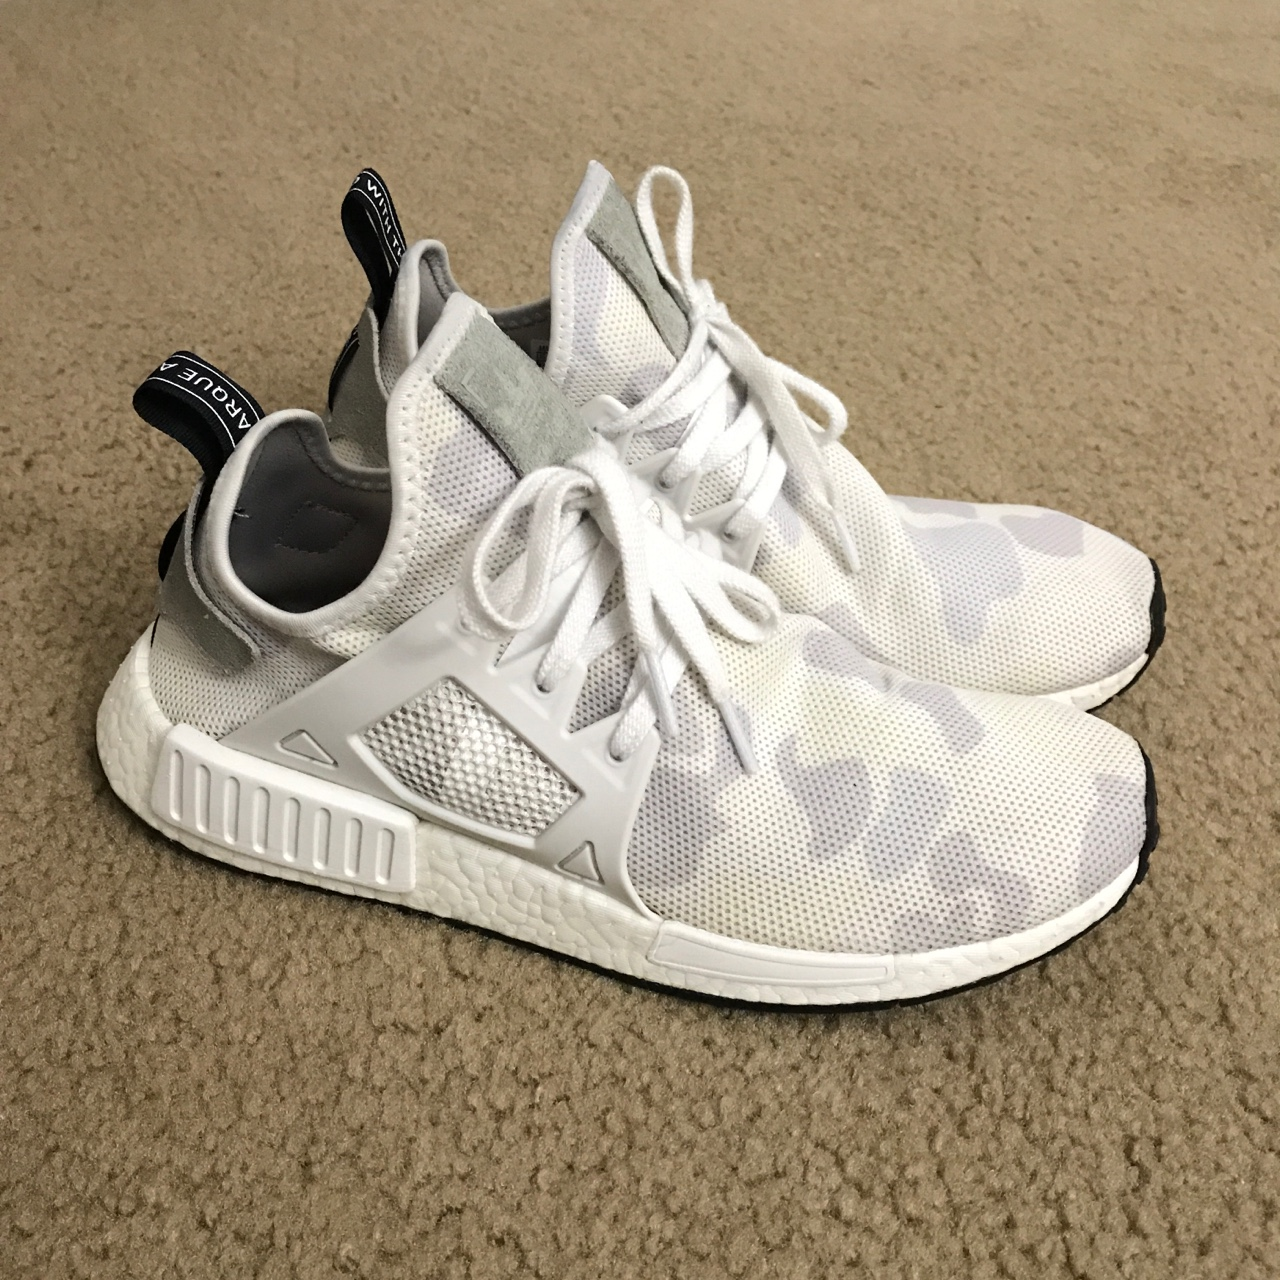 premium selection 84ebd ed835 Adidas NMD XR1 White Duck Camo / Great Condition ...